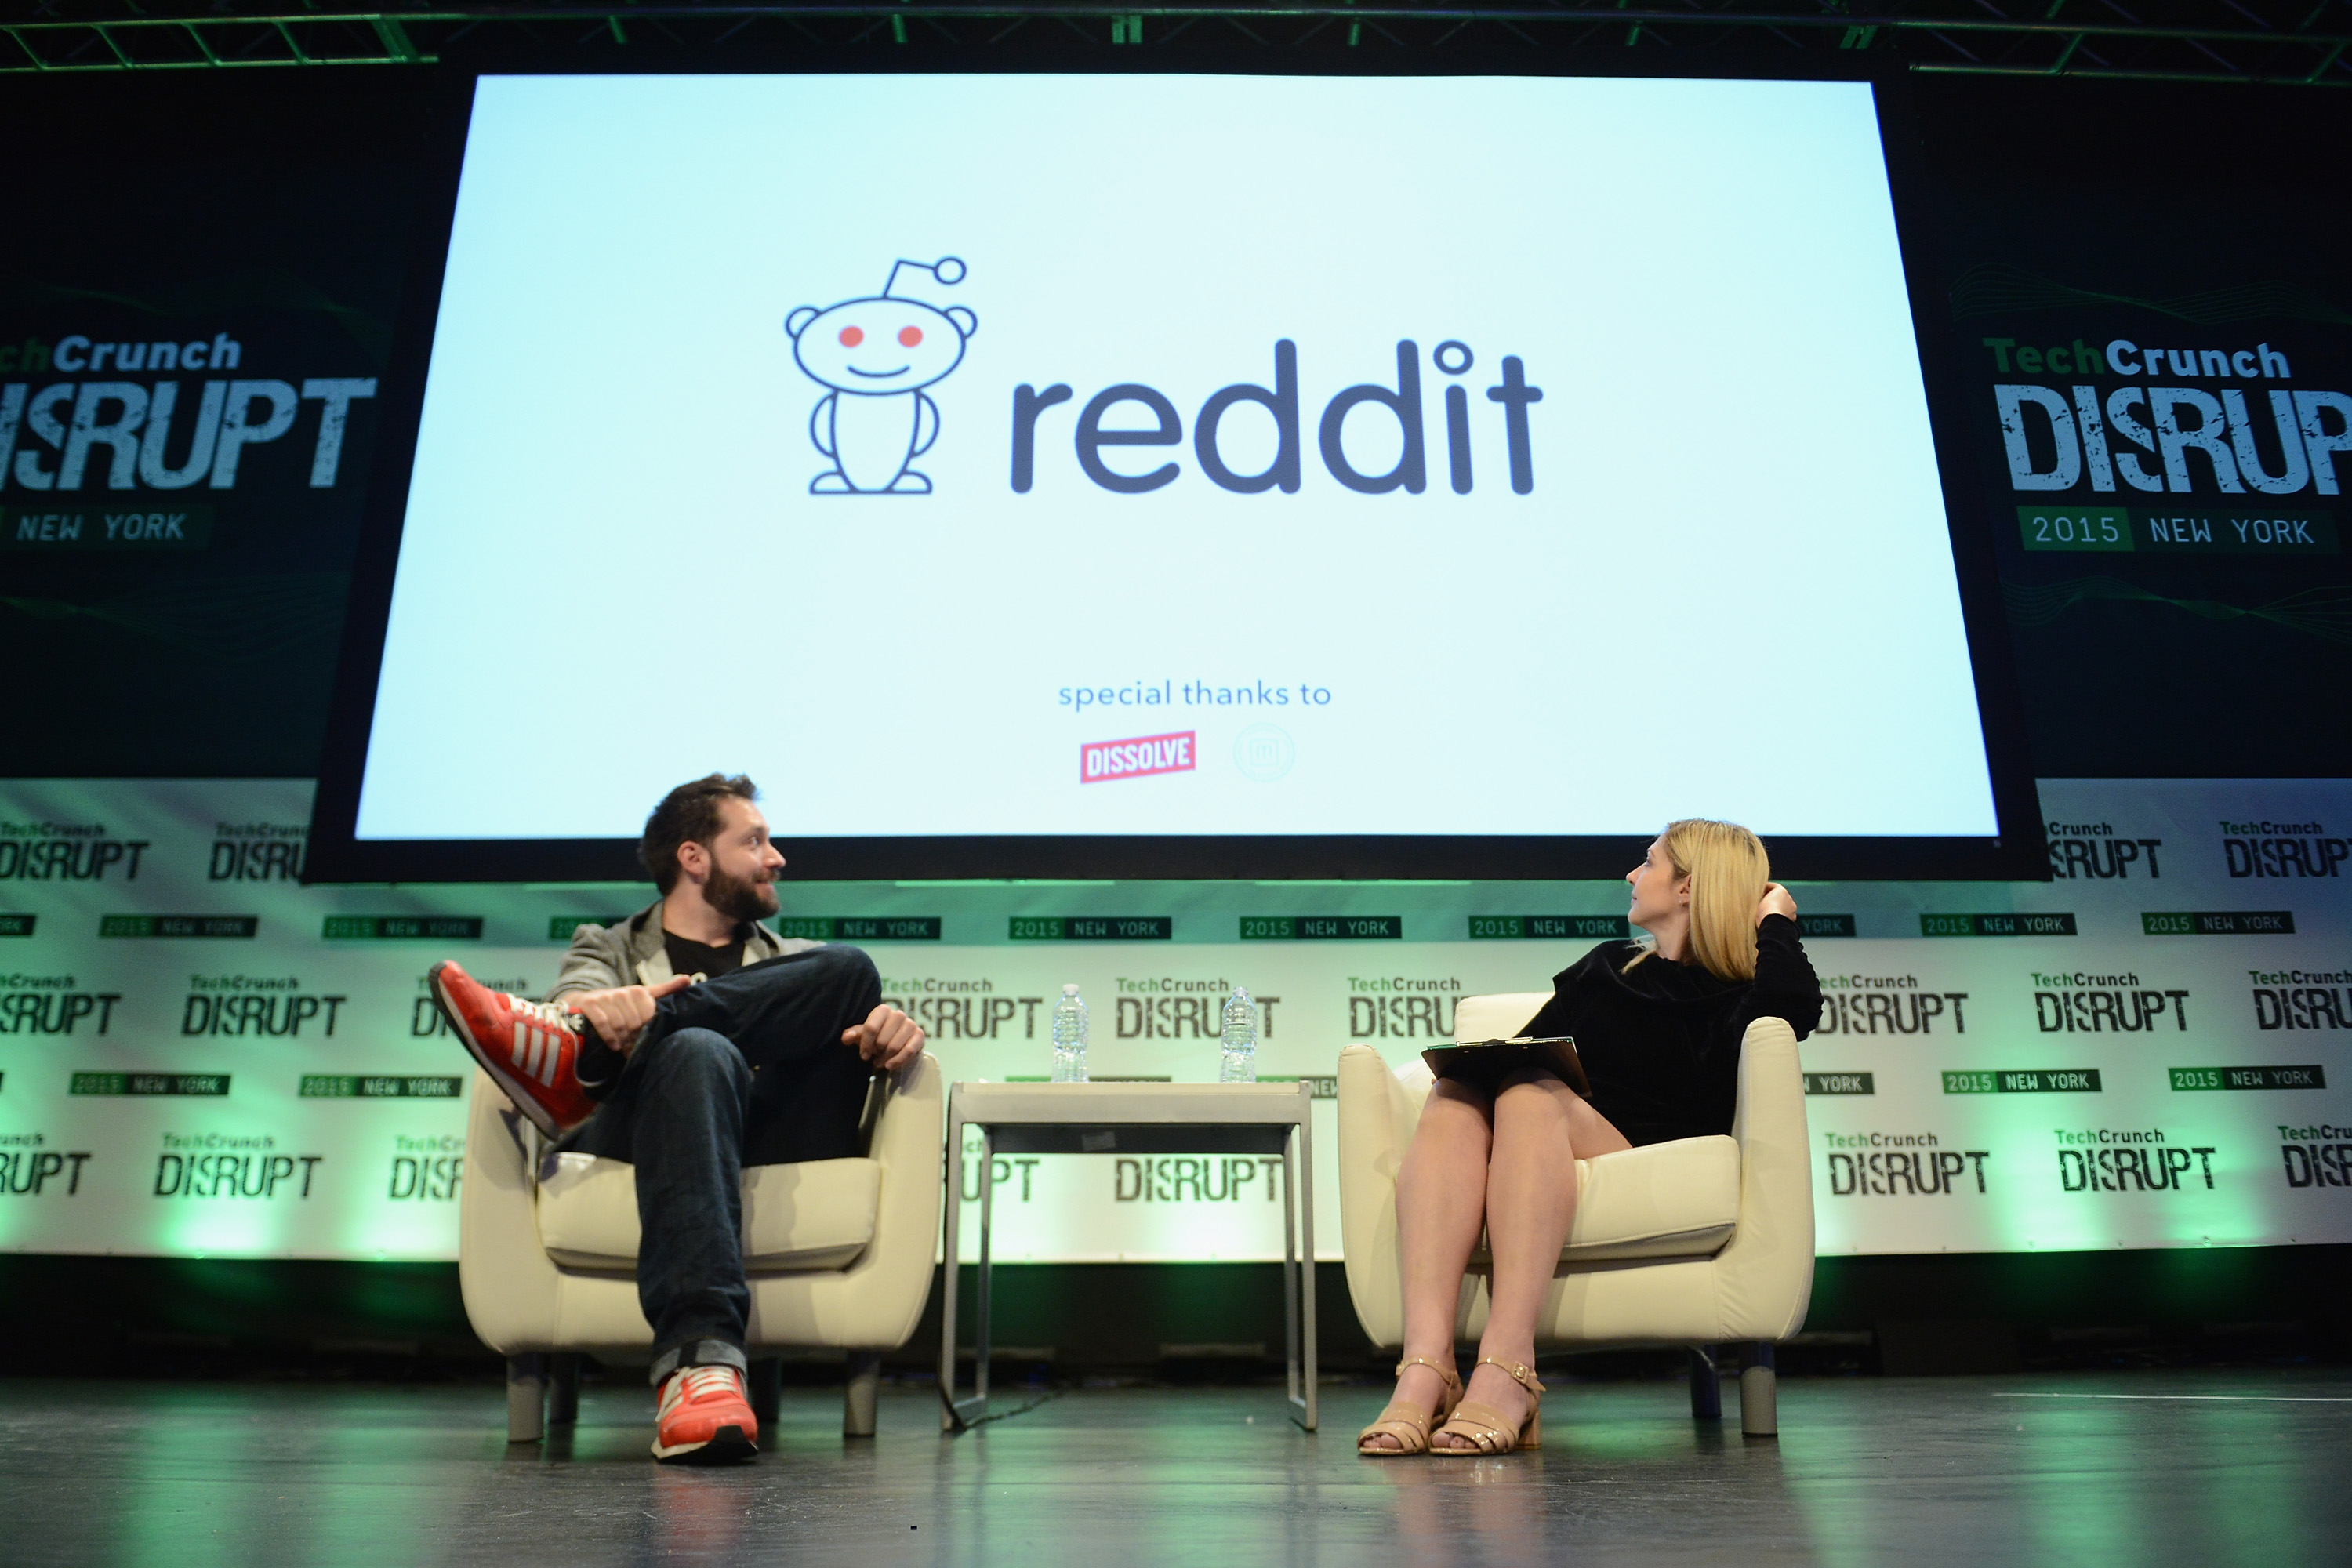 Co-Founder and Executive Chair of Reddit, and Partner at Y Combinator, Alexis Ohanian and co-editor at TechCrunch, Alexia Tsotsis appear onstage during TechCrunch Disrupt NY 2015 - Day 3 at The Manhattan Center on May 6, 2015 in New York City.